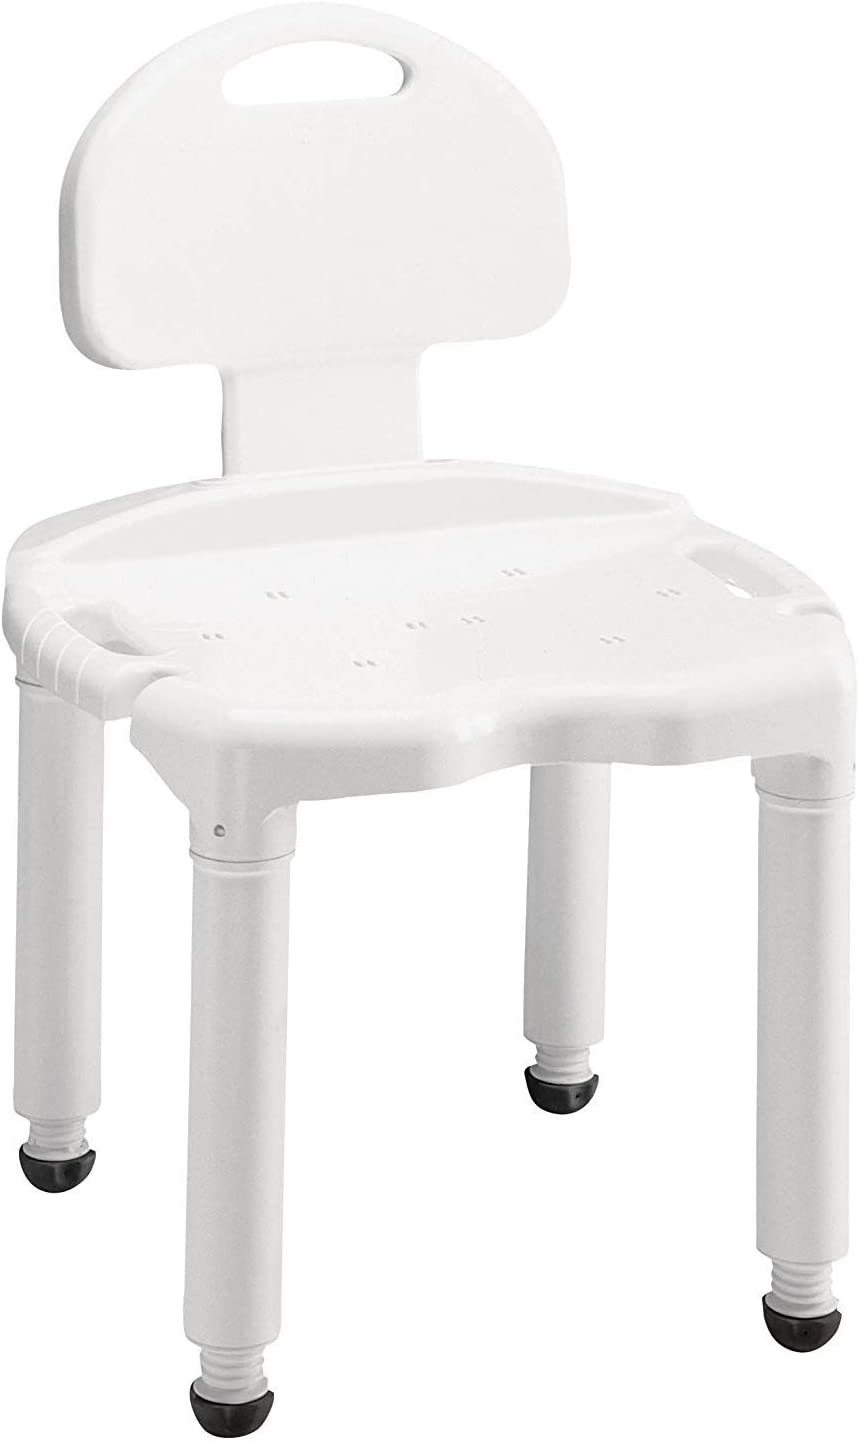 Carex Bath Seat And Shower Chair With Back For Seniors, Elderly, Disabled,  Handicap, and Injured Persons, Supports Up To 10lbs